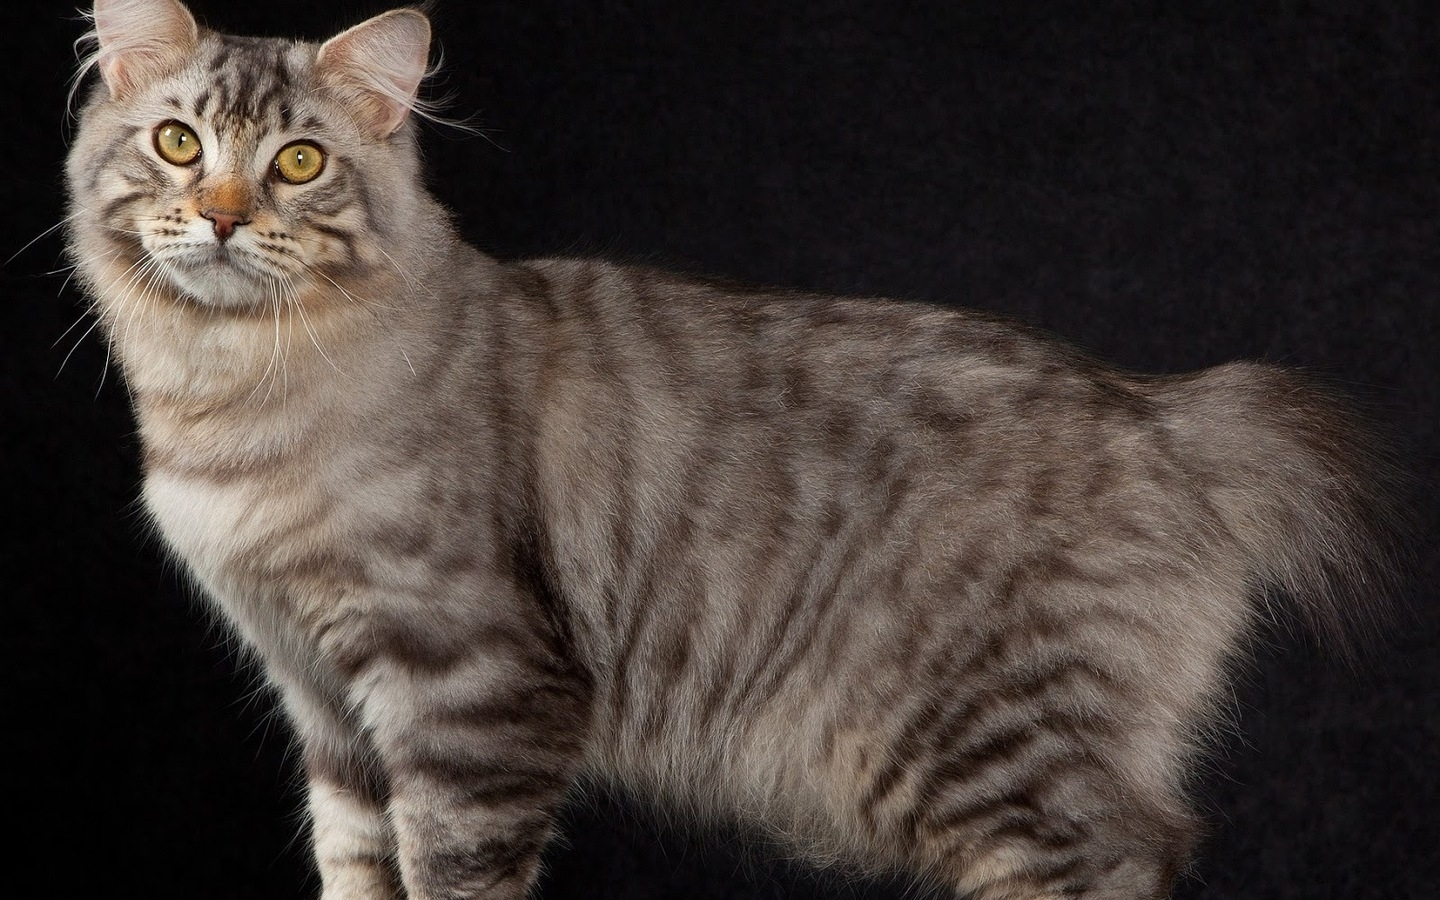 American Bobtail Cat Pose for 1440 x 900 widescreen resolution